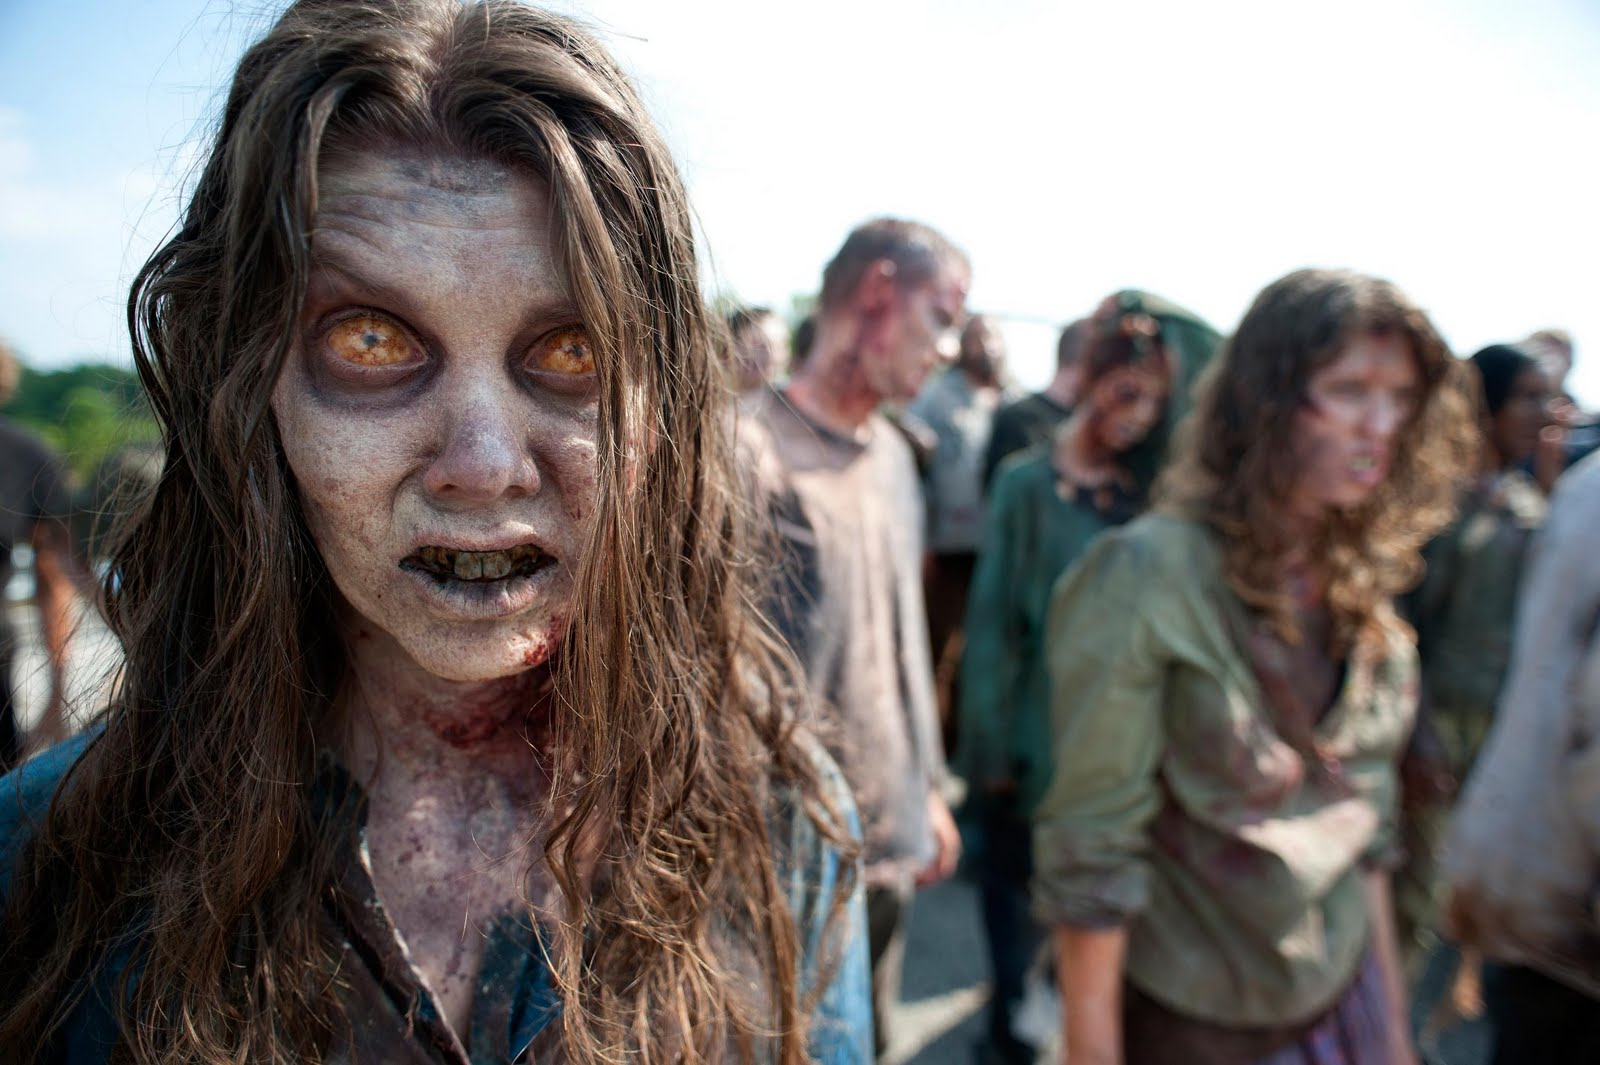 below a few pictures of the upcoming season 2 of the walking dead